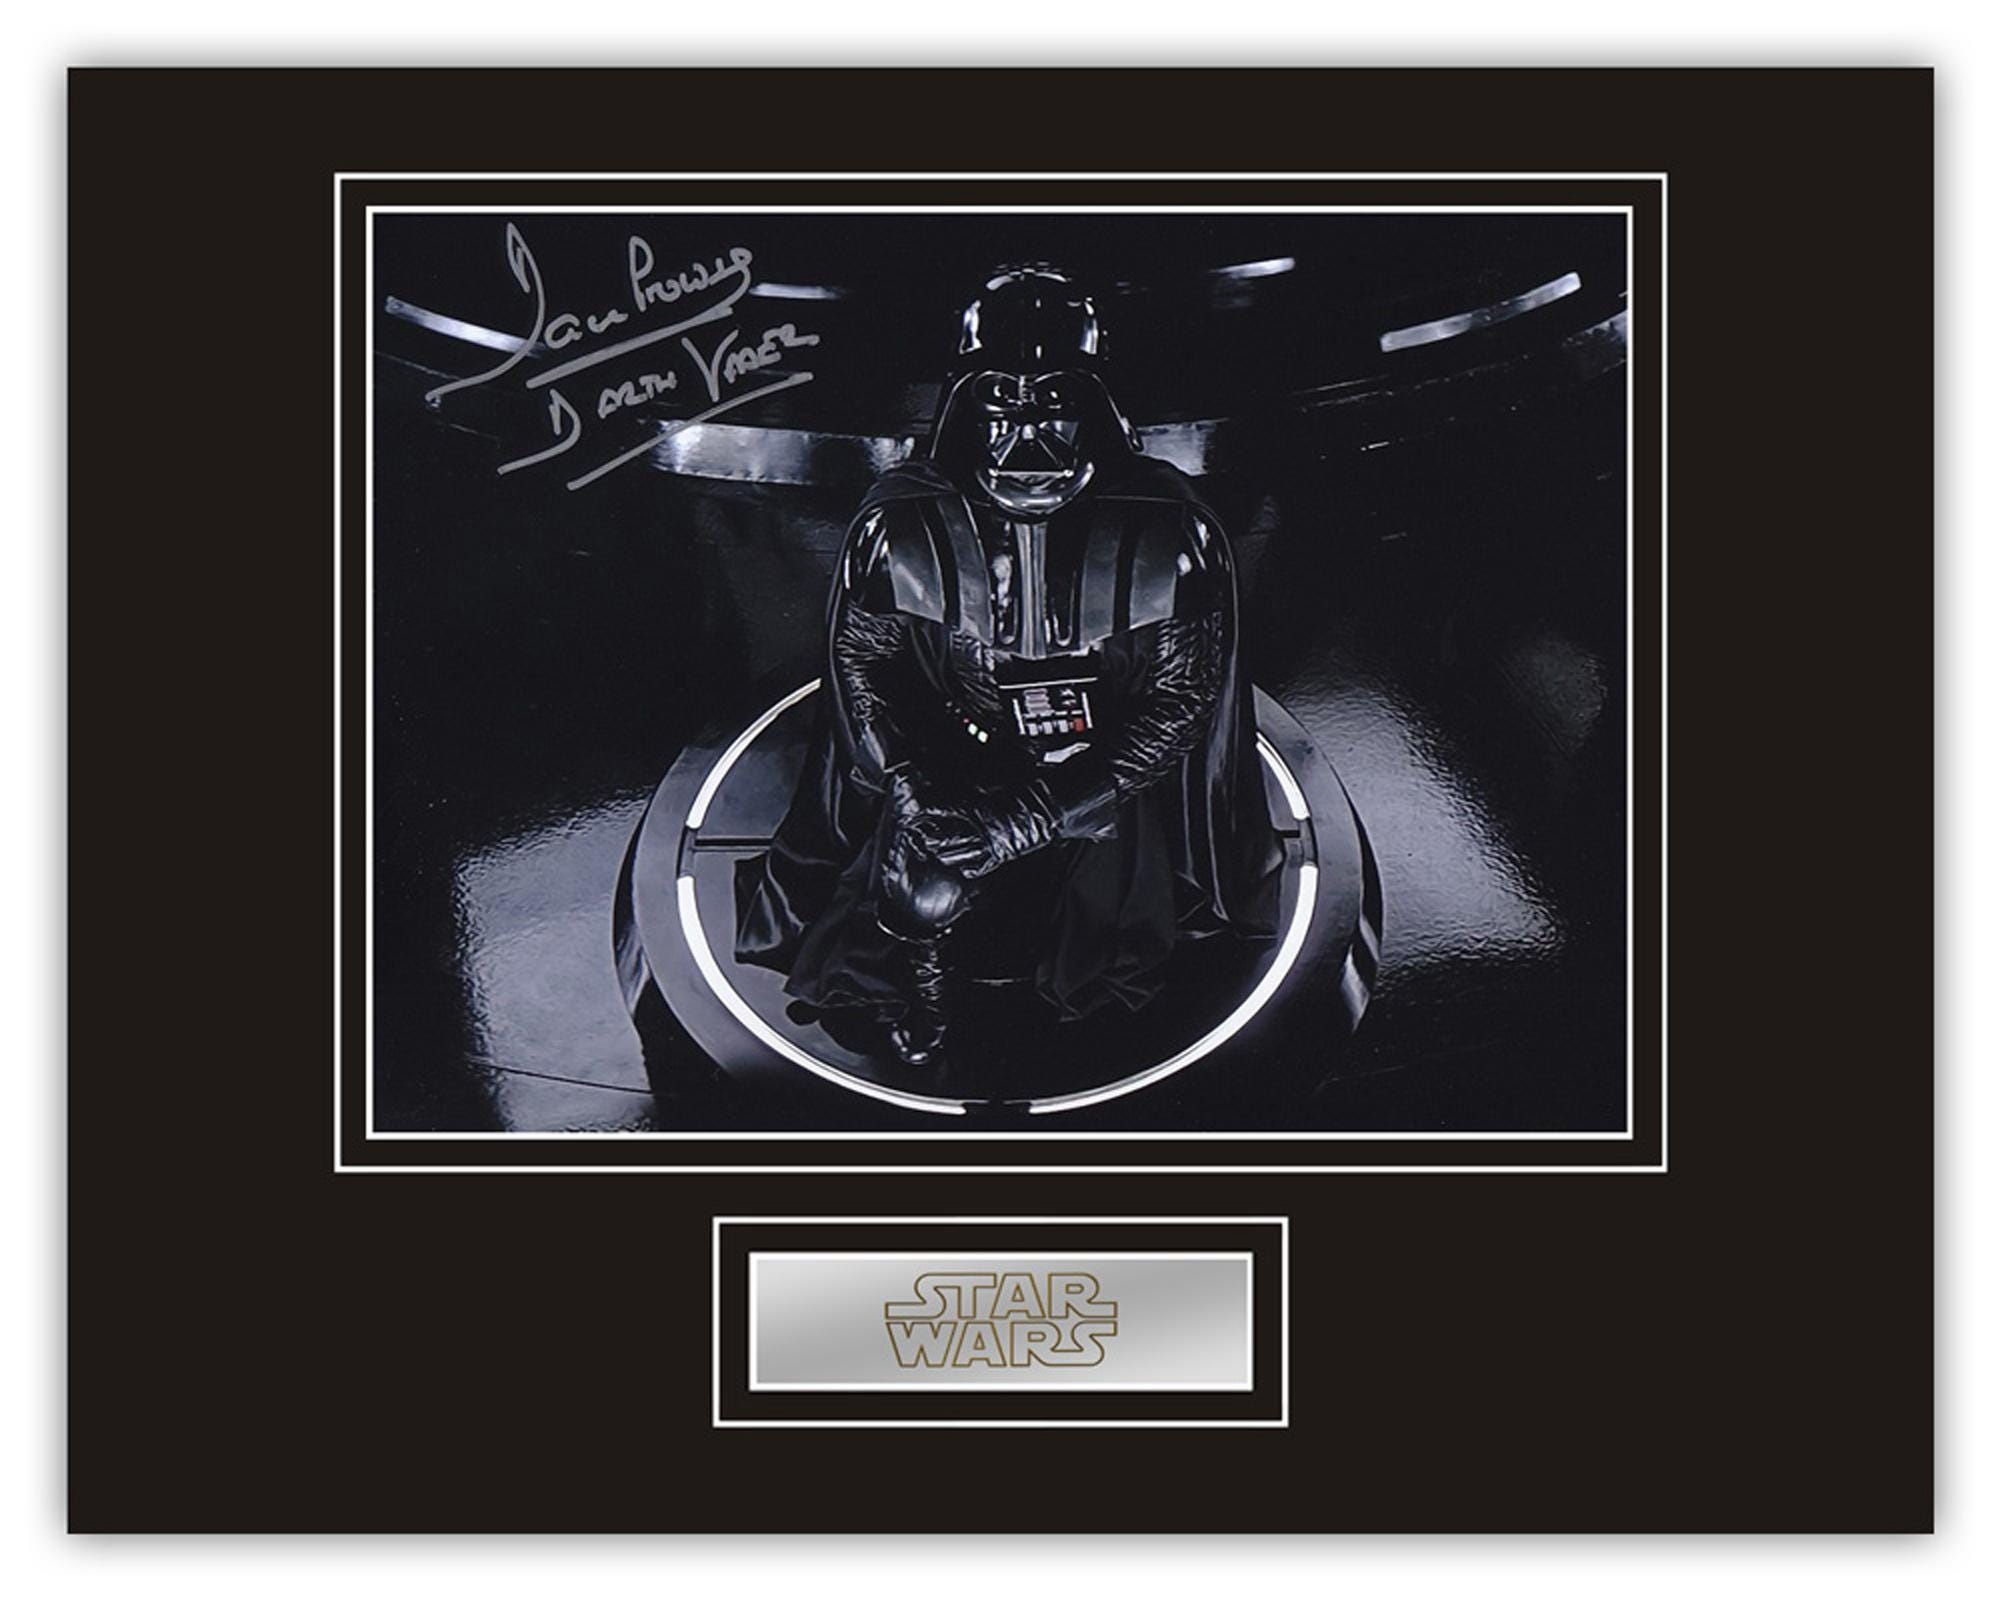 Star Wars Dave Prowse hand signed professionally mounted display. Stunning Display. Rare Image. This